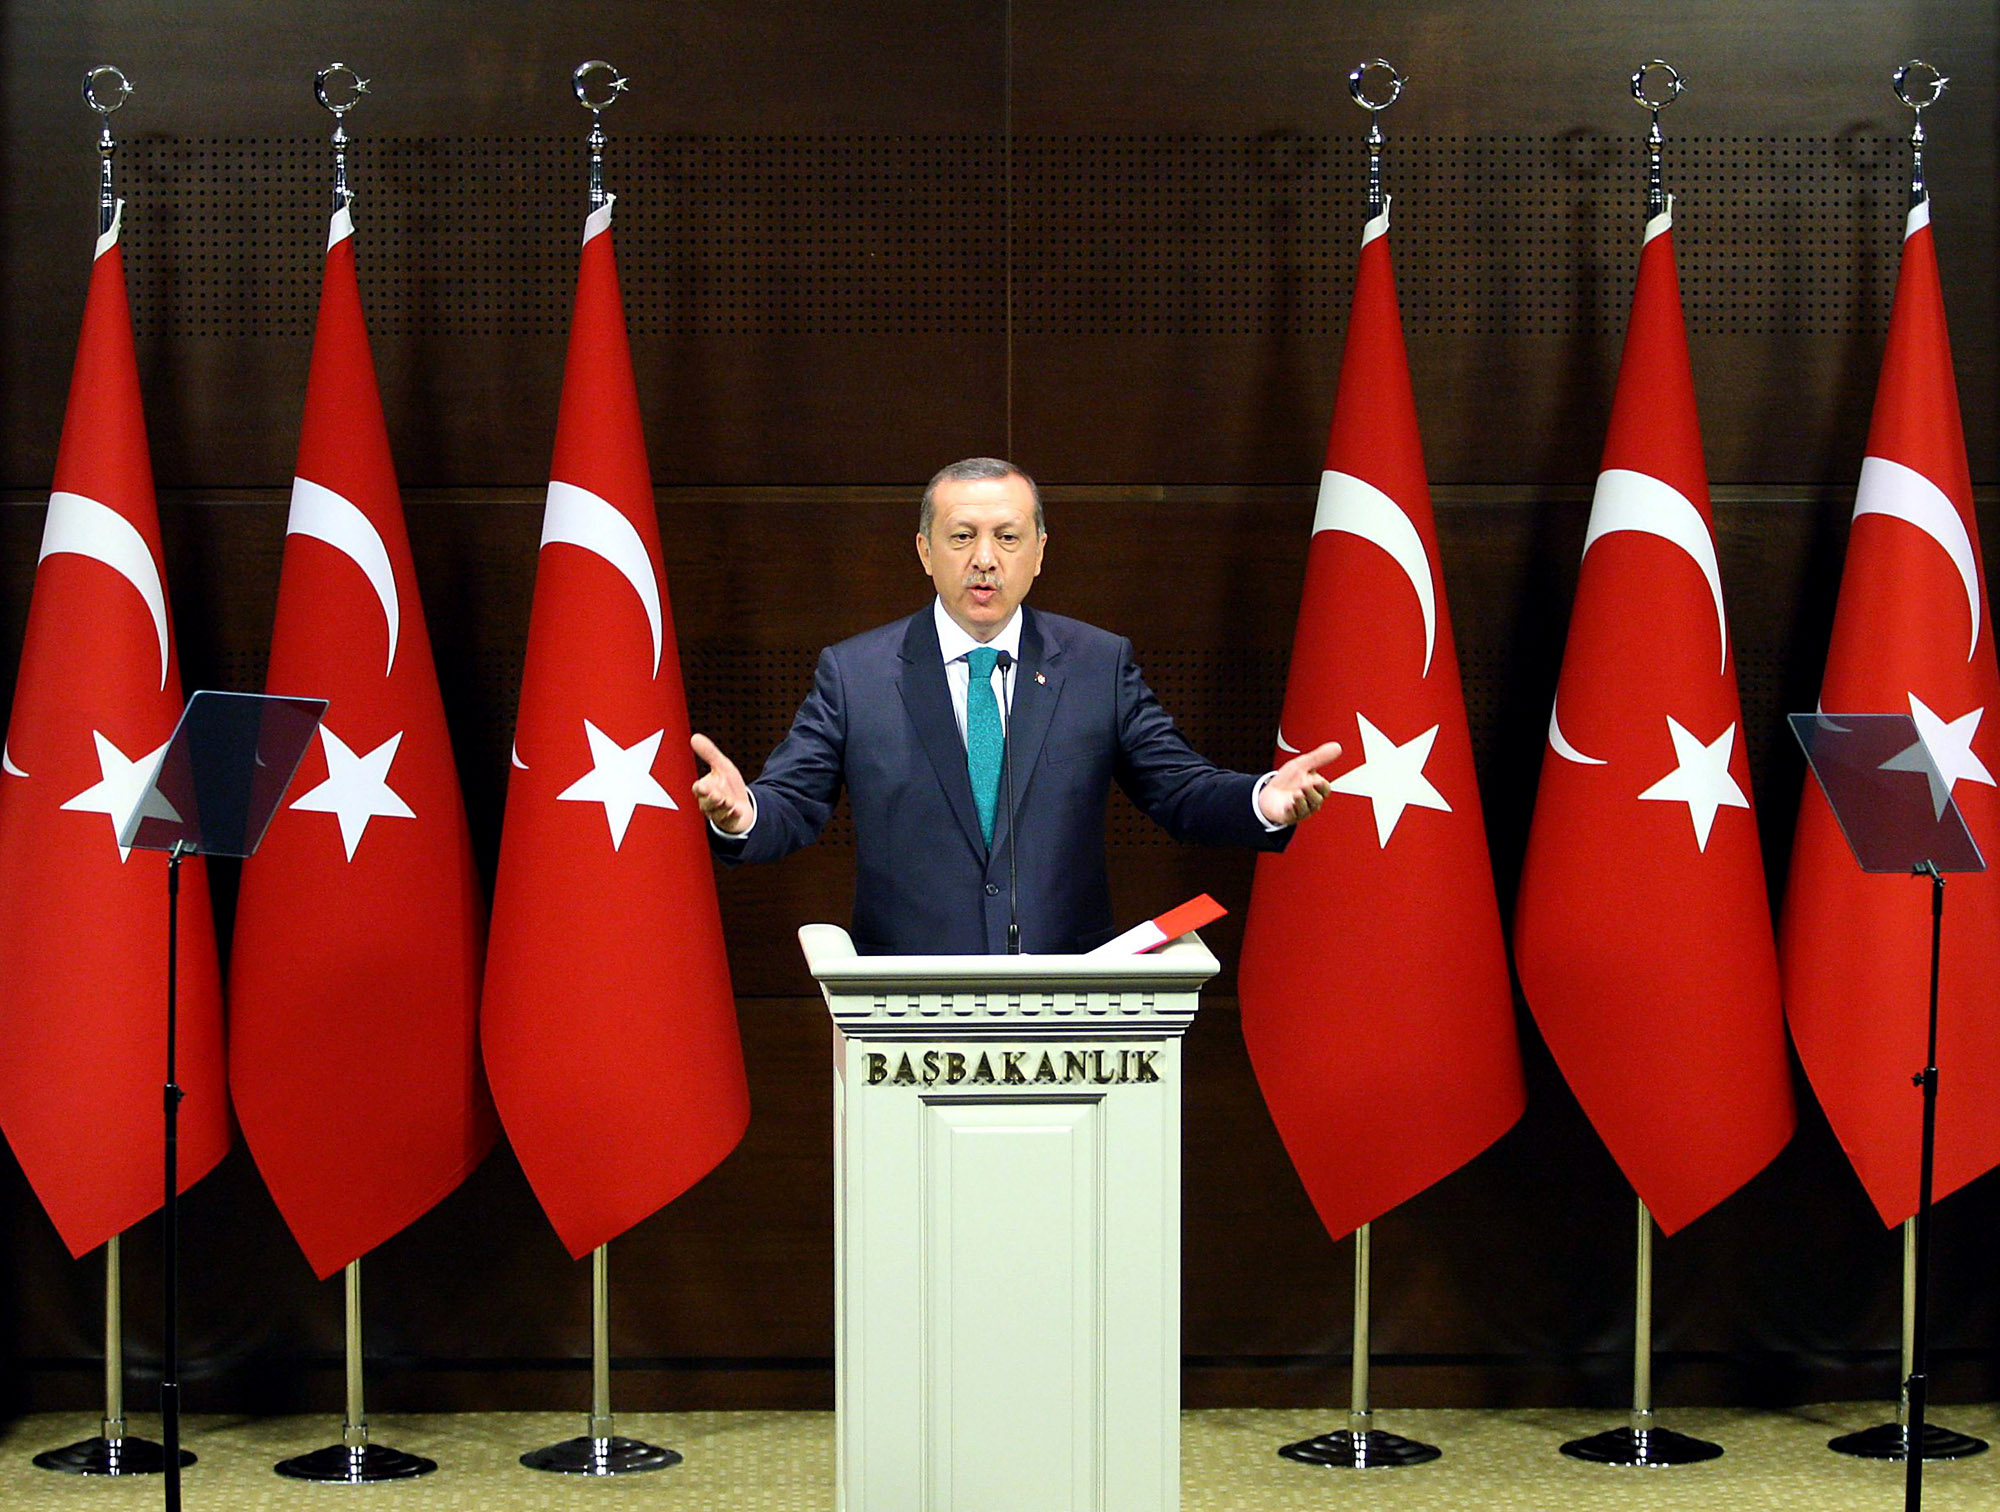 Grand Chauvinist Erdogan: Appealing to ever powerful nationalist impulses in the Turkish population but in reality doing Washington's bidding.